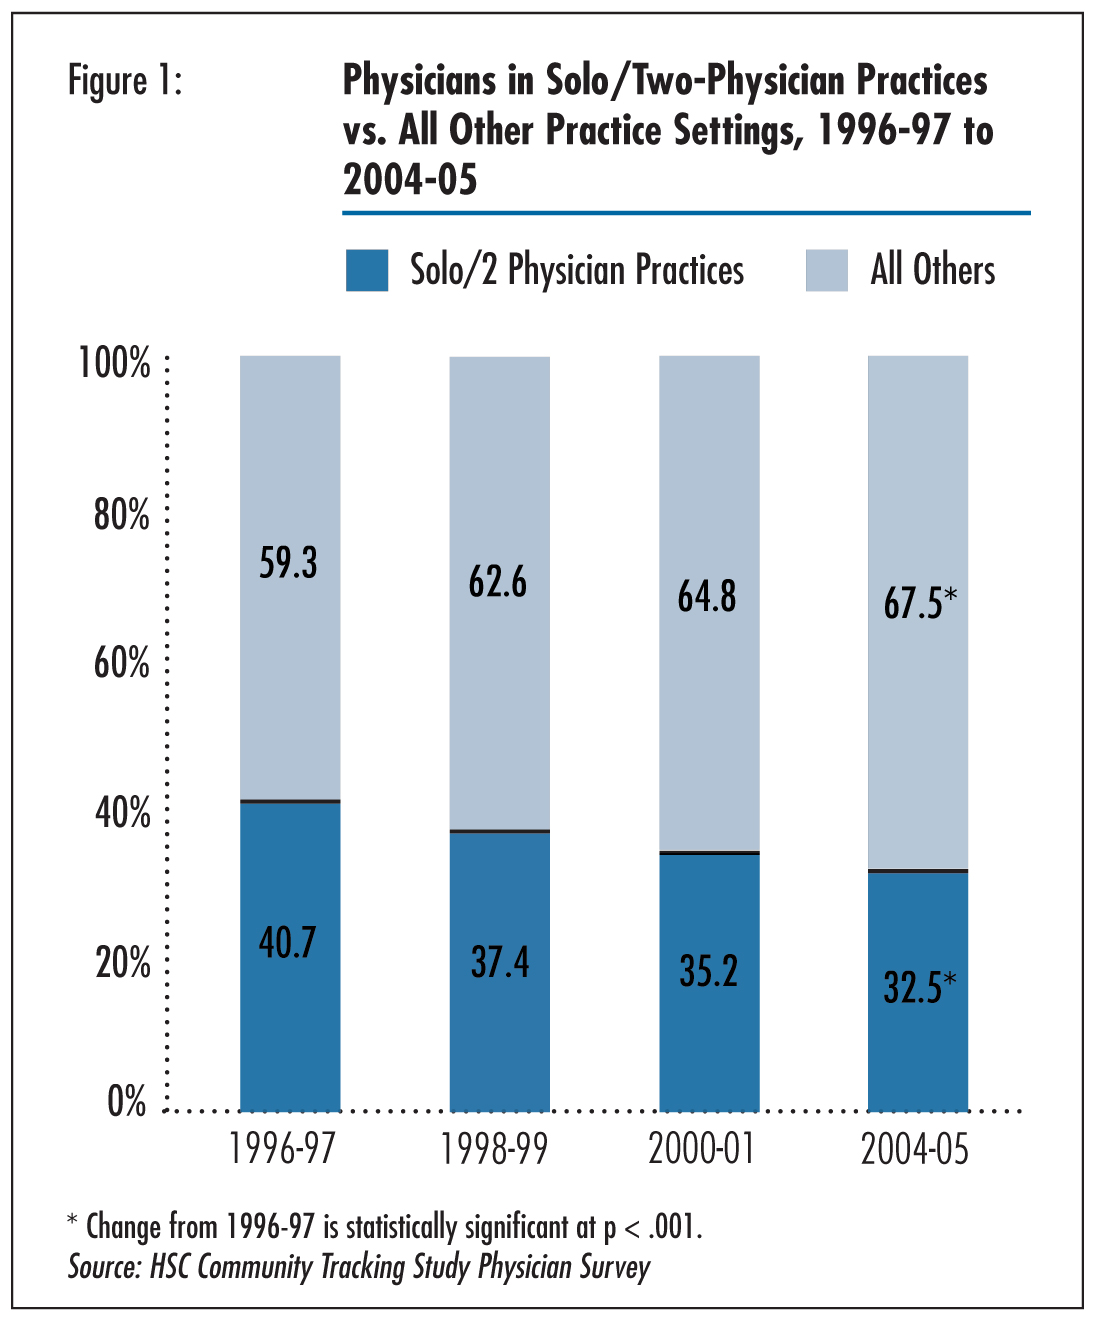 Figure 1 - Physicians in Solo/Two-Physican Practices vs. All Other Practice Settings, 1996-97 to 2004-05